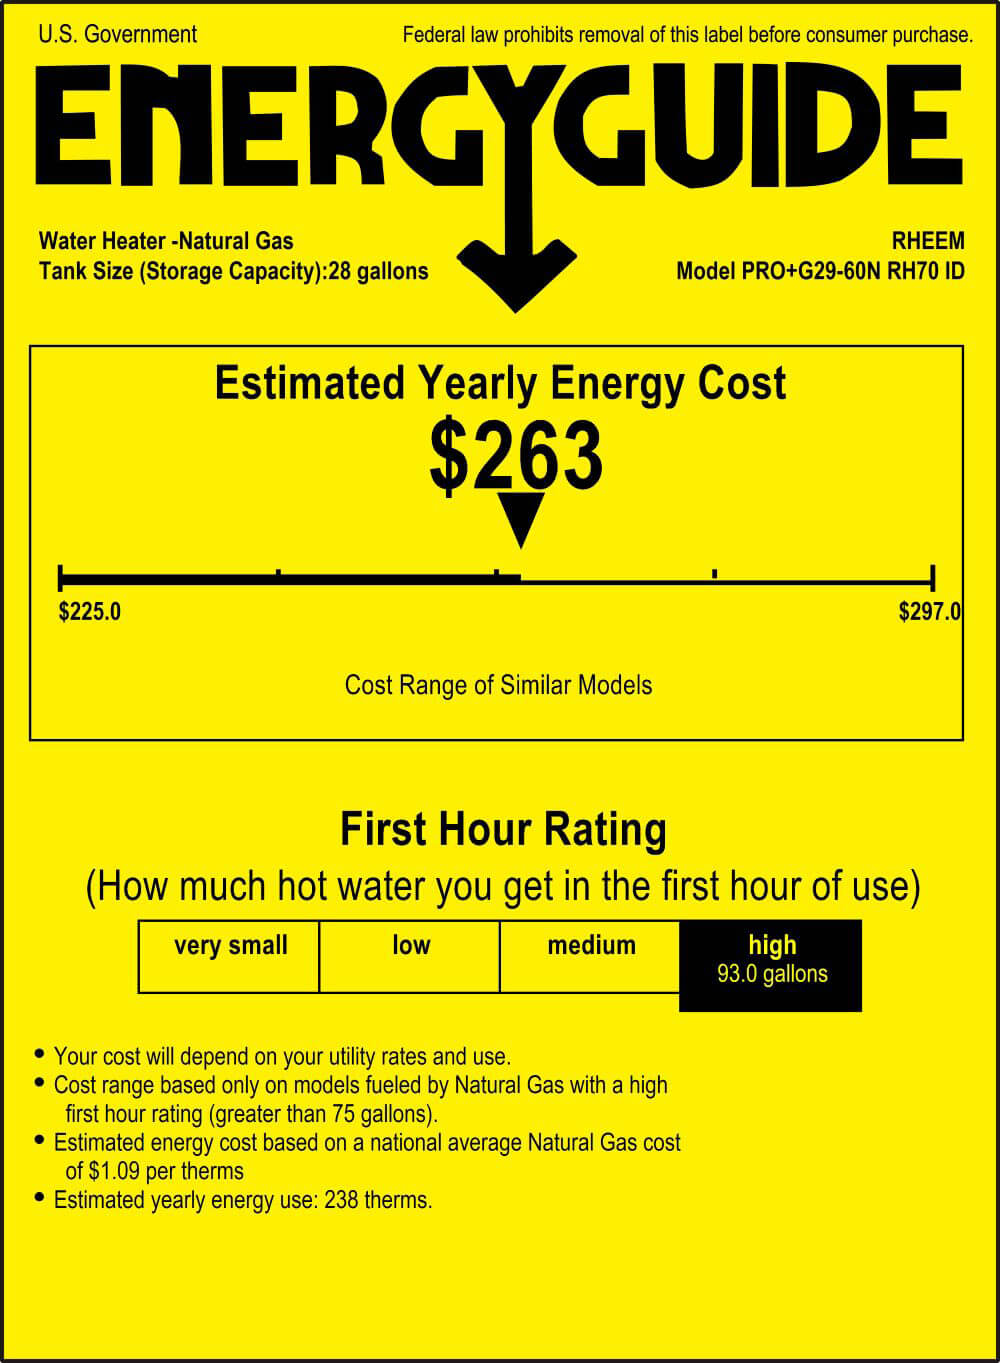 energy guide estimated yearly energy cost $263